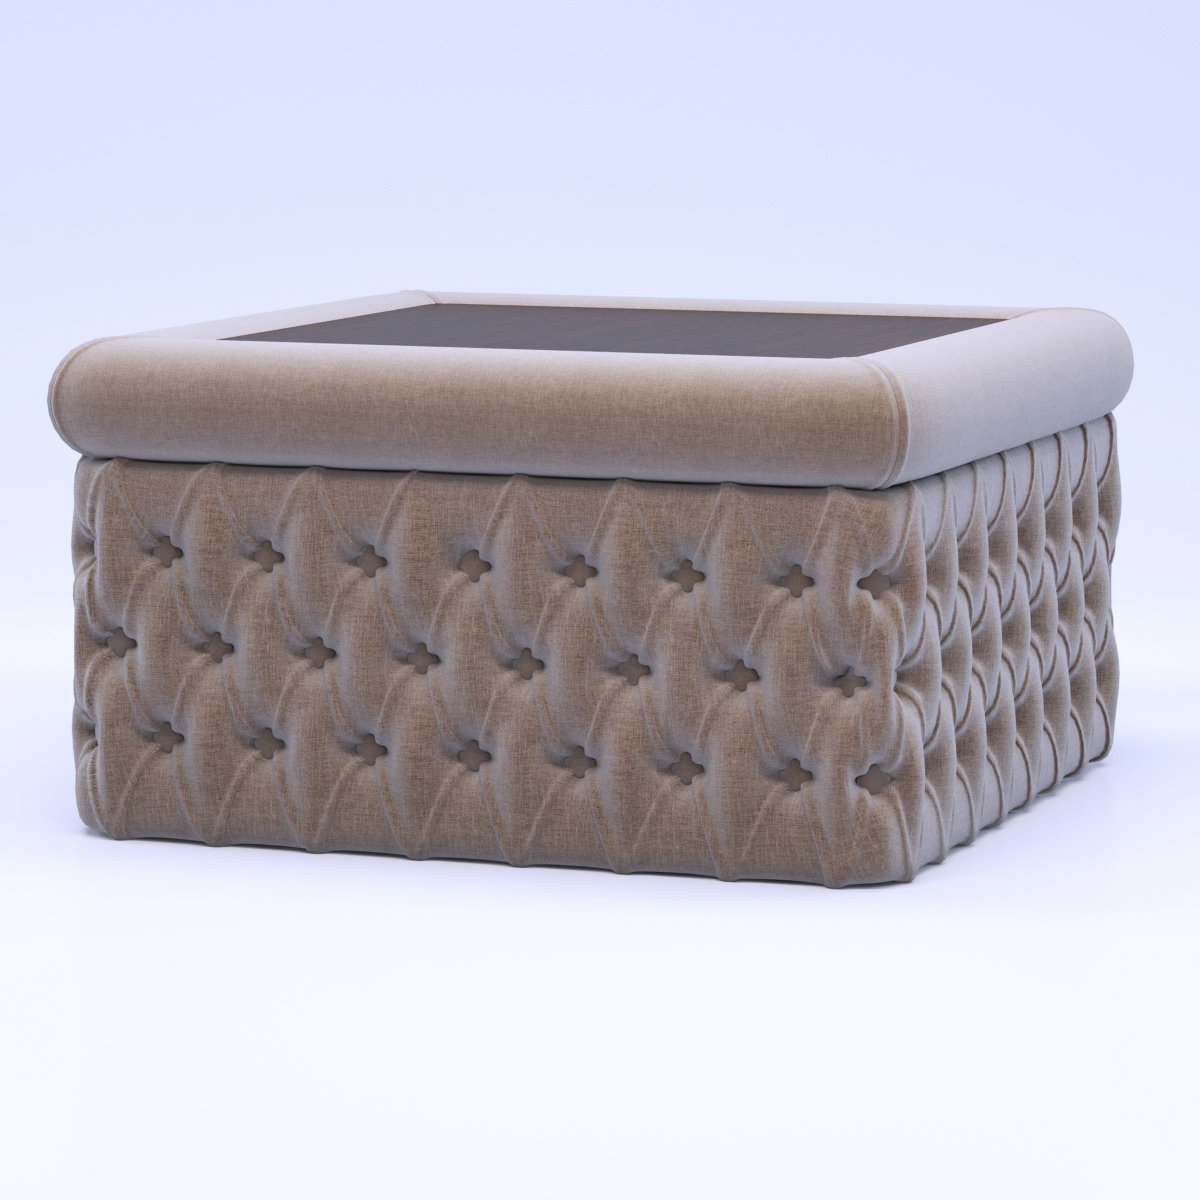 car seat desk chair conversion burnt orange kitchen cushions table bordignon camillo c snc 3d model max | cgtrader.com